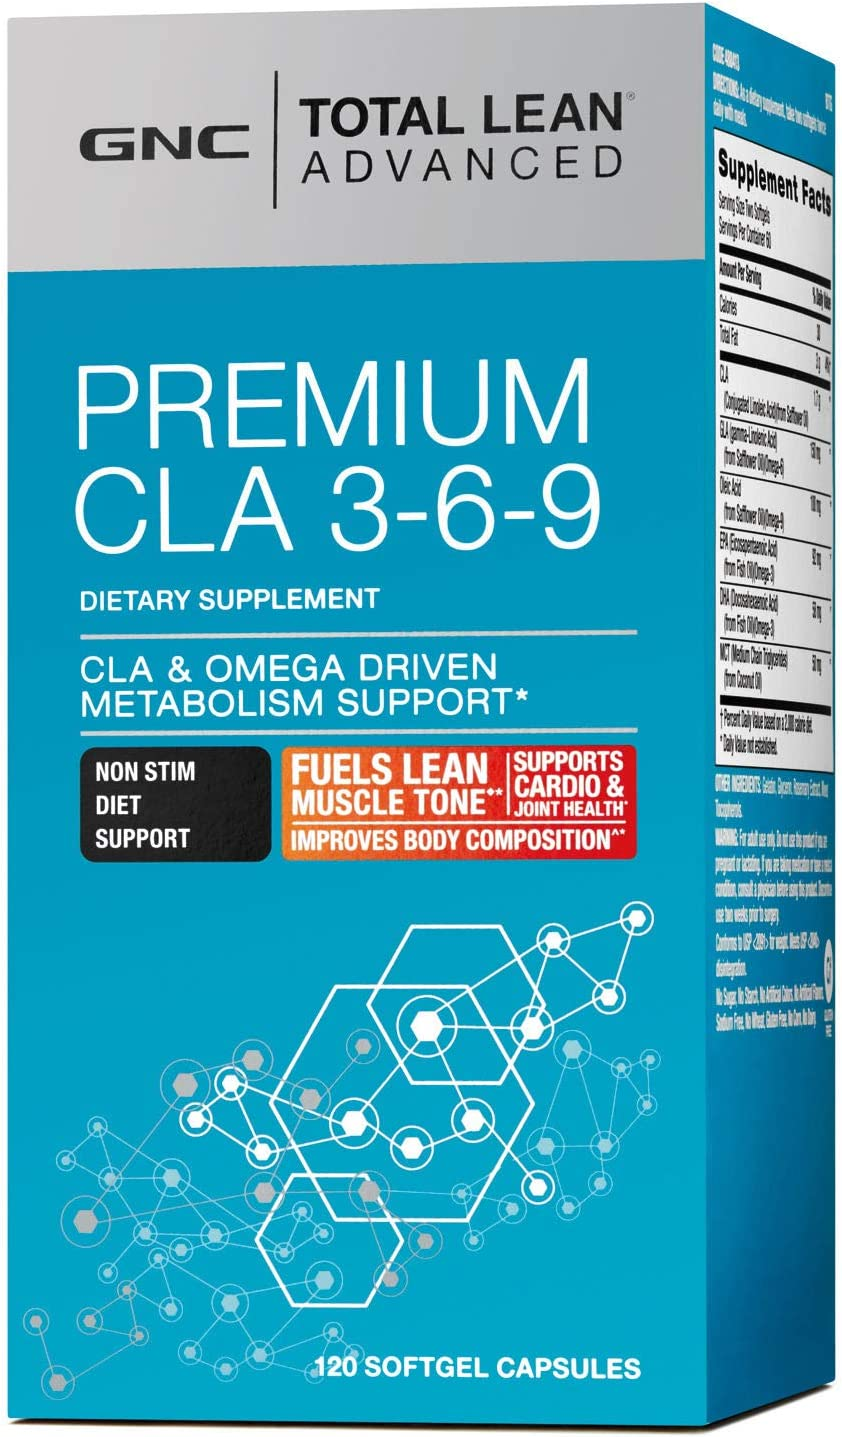 GNC Total Lean Advanced Premium CLA 3-6-9, 120 Softgel Capsules, Supports Exercise and Muscle Recovery